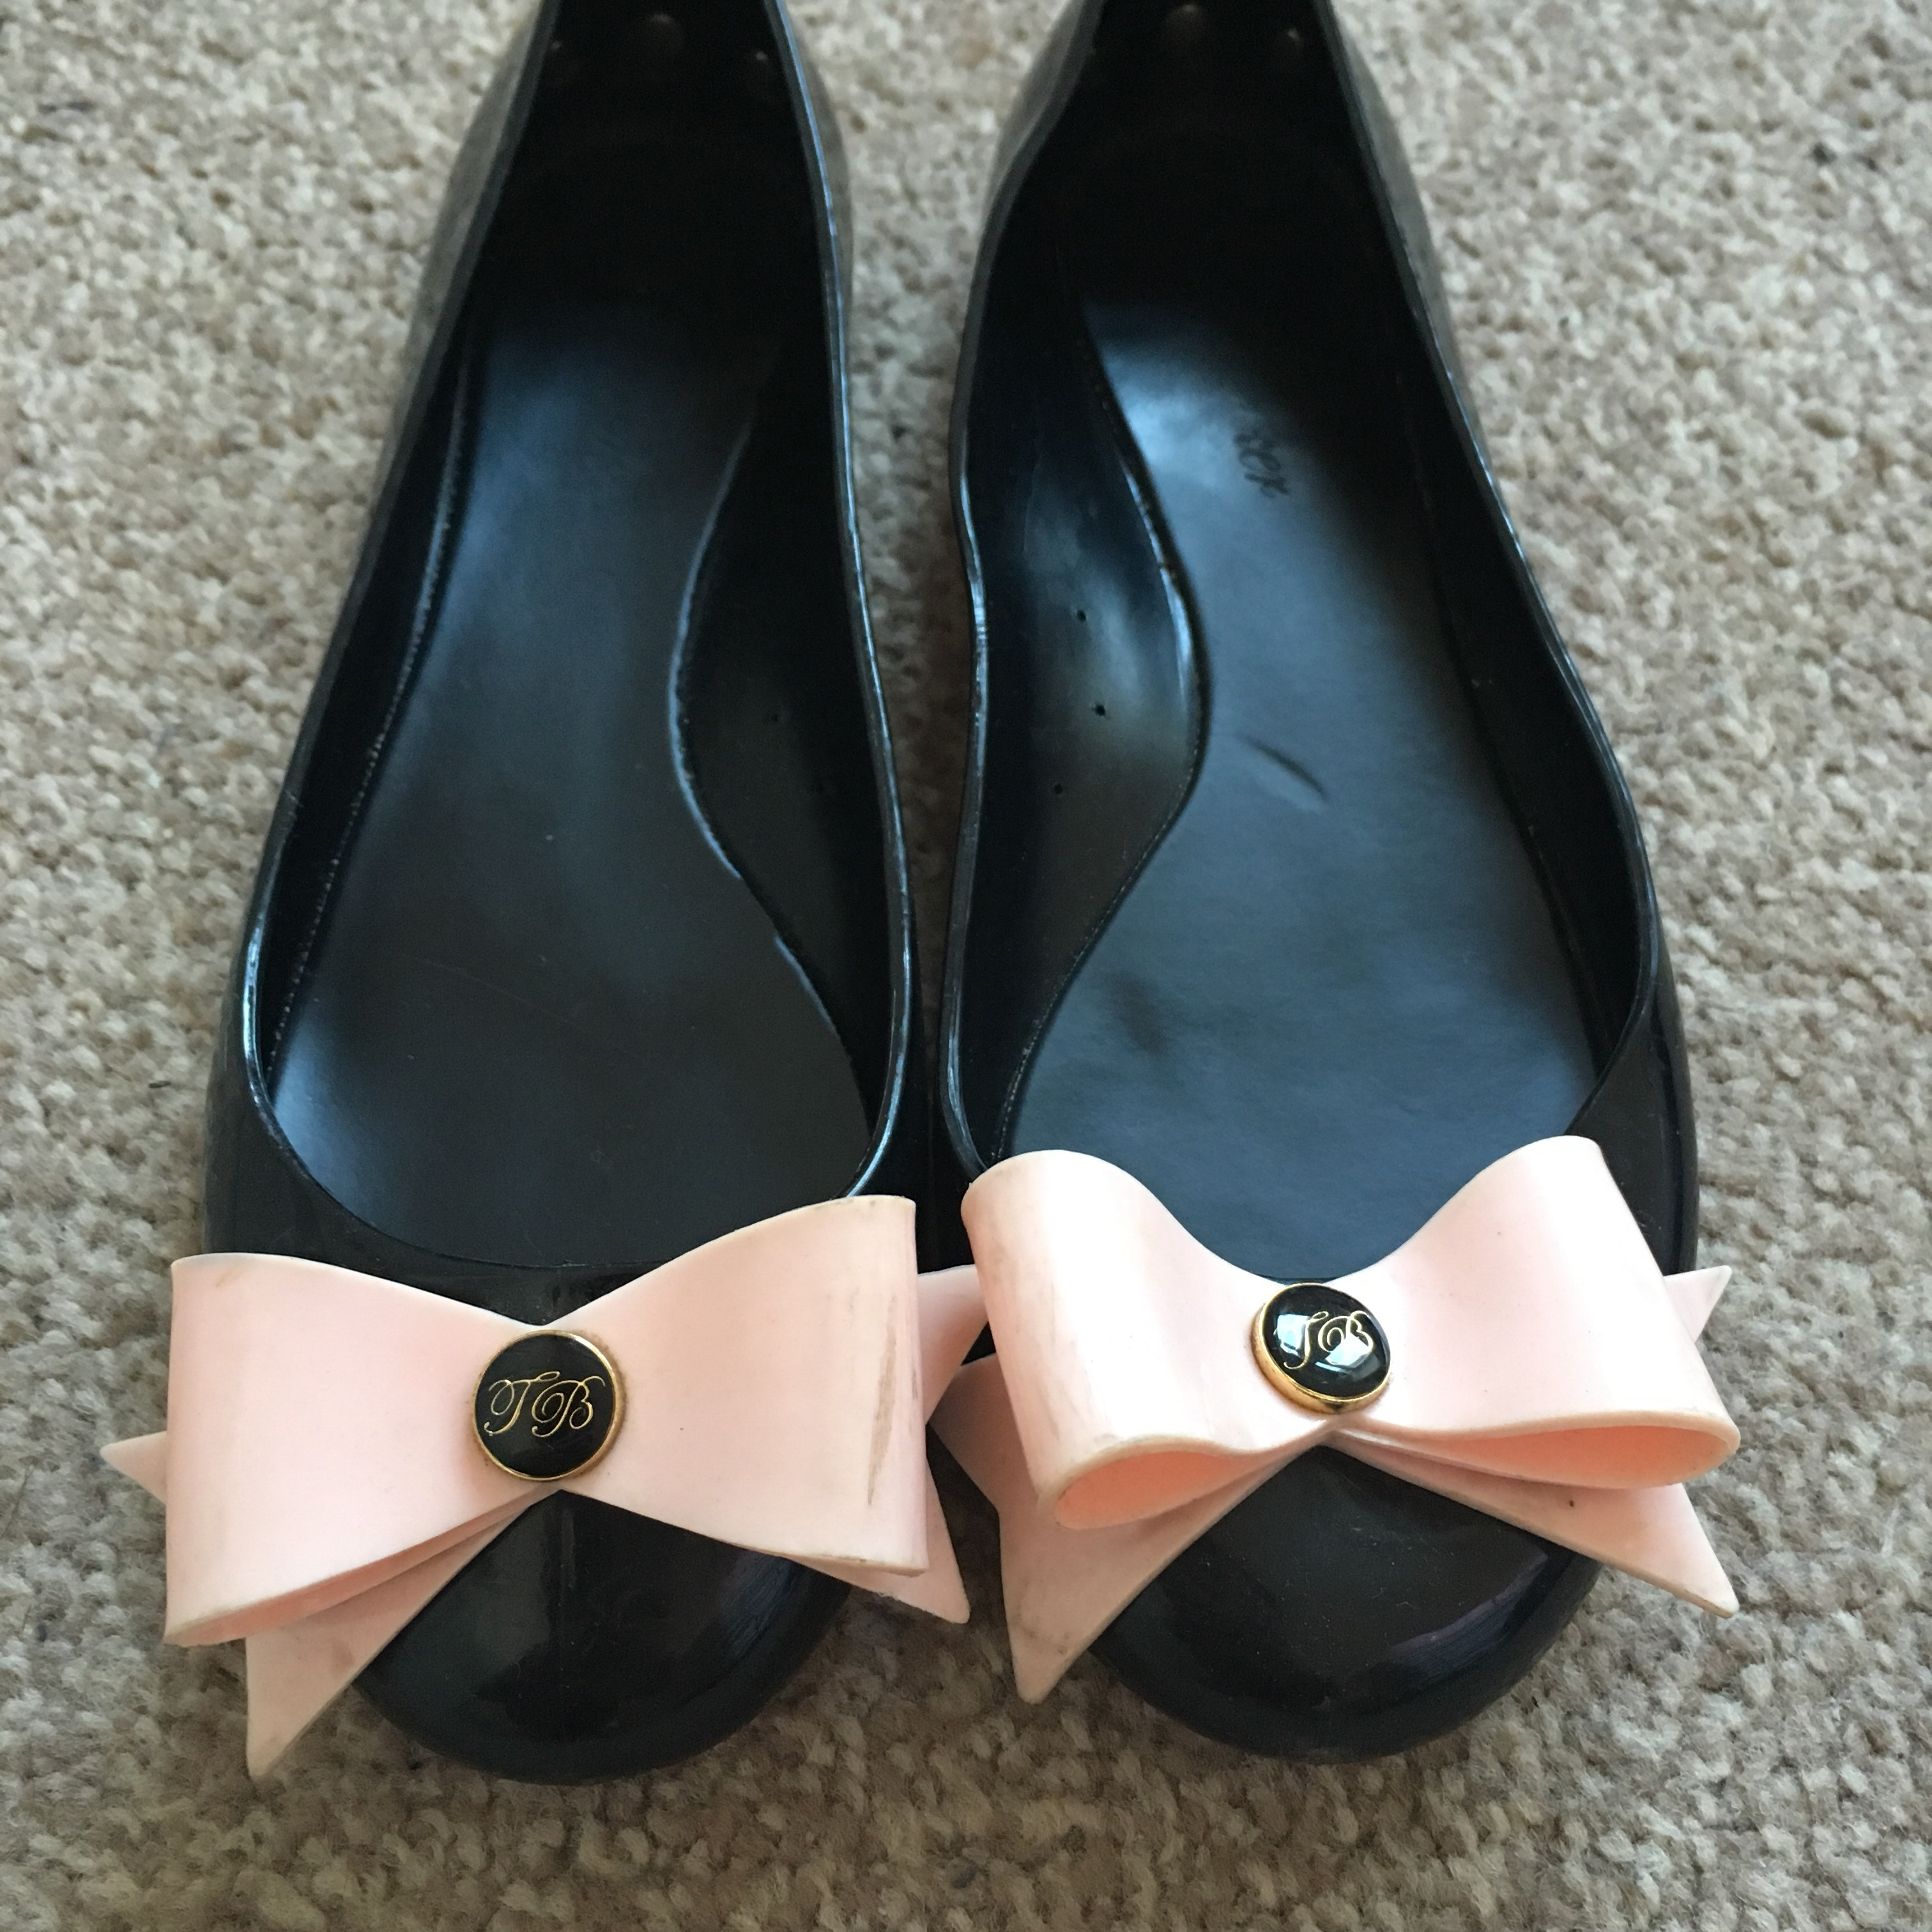 Ted Baker Jelly shoes that are similar